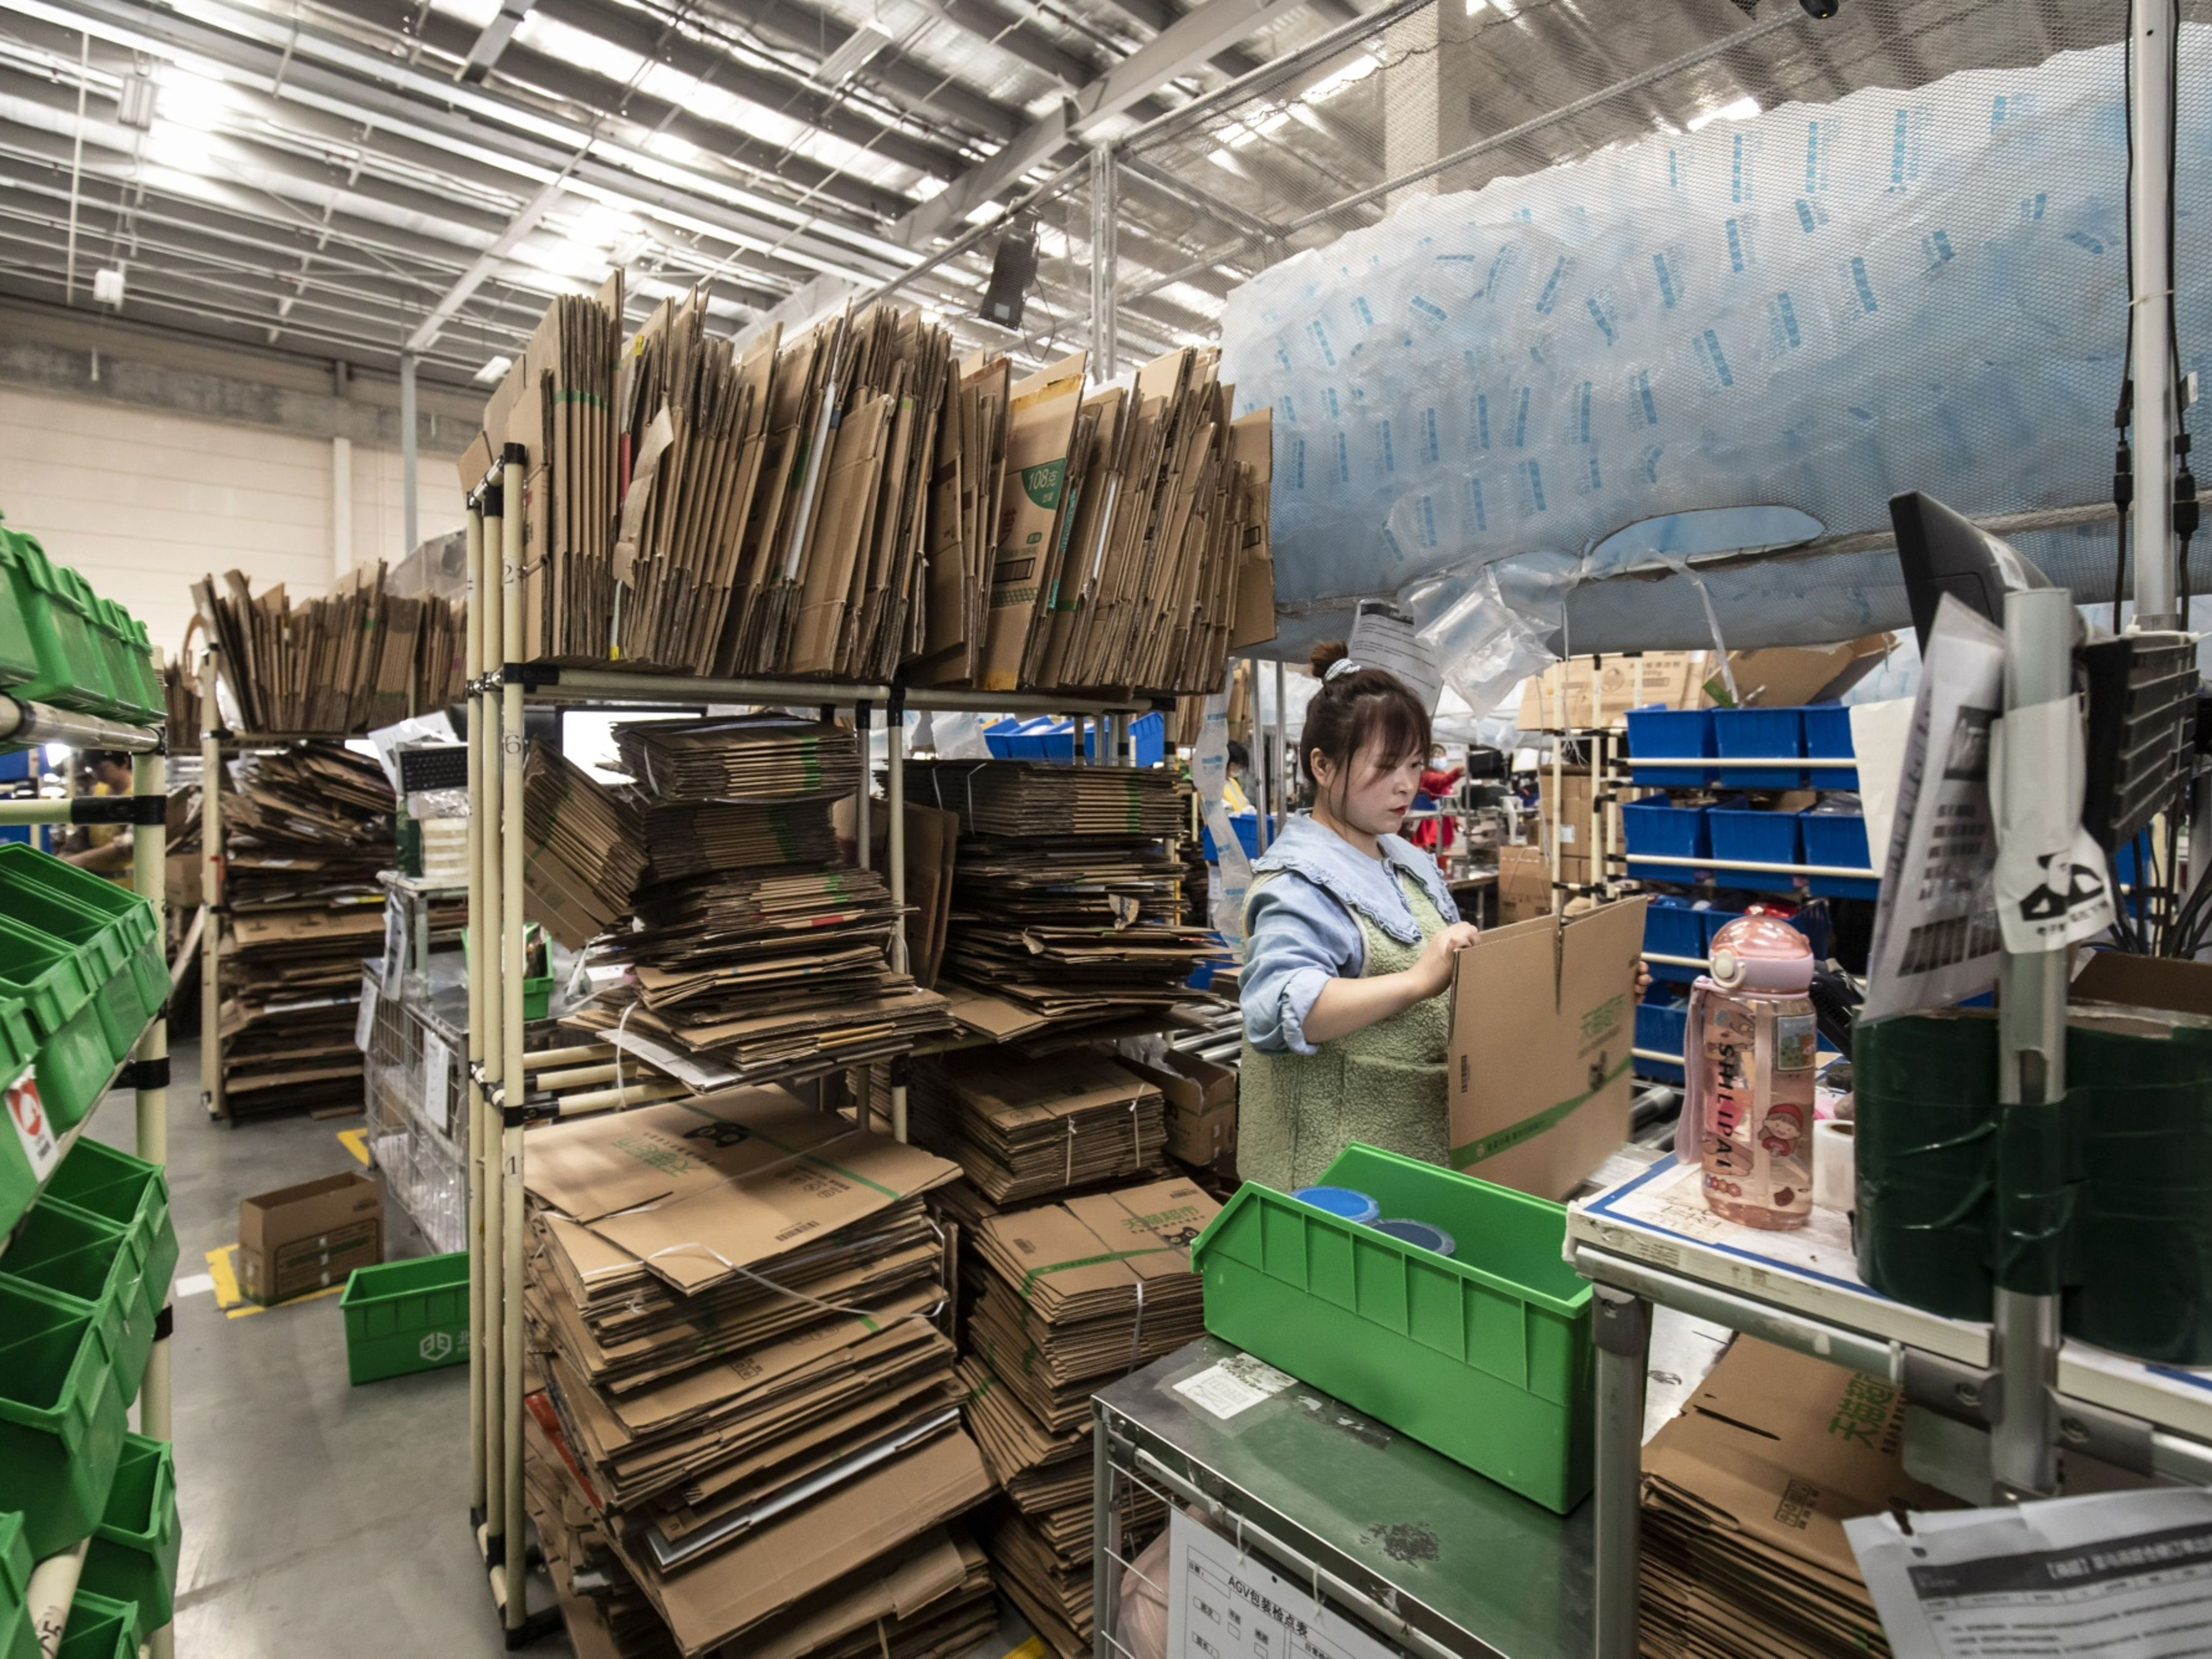 China's Online Shopping Addiction Is Killing Its Green Packaging Drive